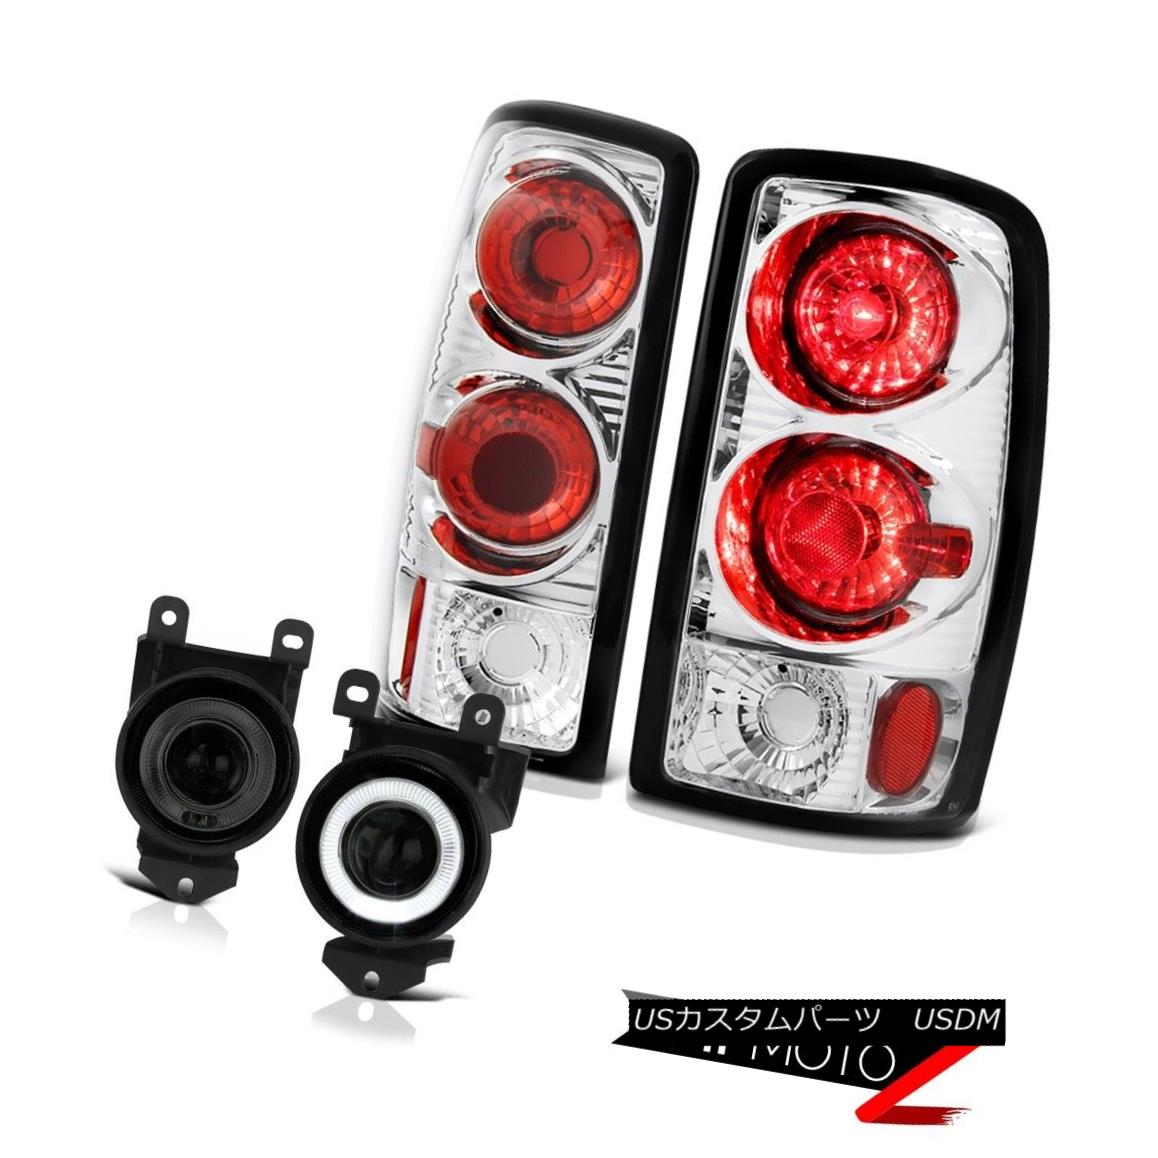 テールライト 2000-2006 Yukon XL Denali Altezza Tail Lights Projector LED DRL Fog Lamps Pair 2000-2006 Yukon XL Denali AltezzaテールライトプロジェクターLED DRLフォグランプペア